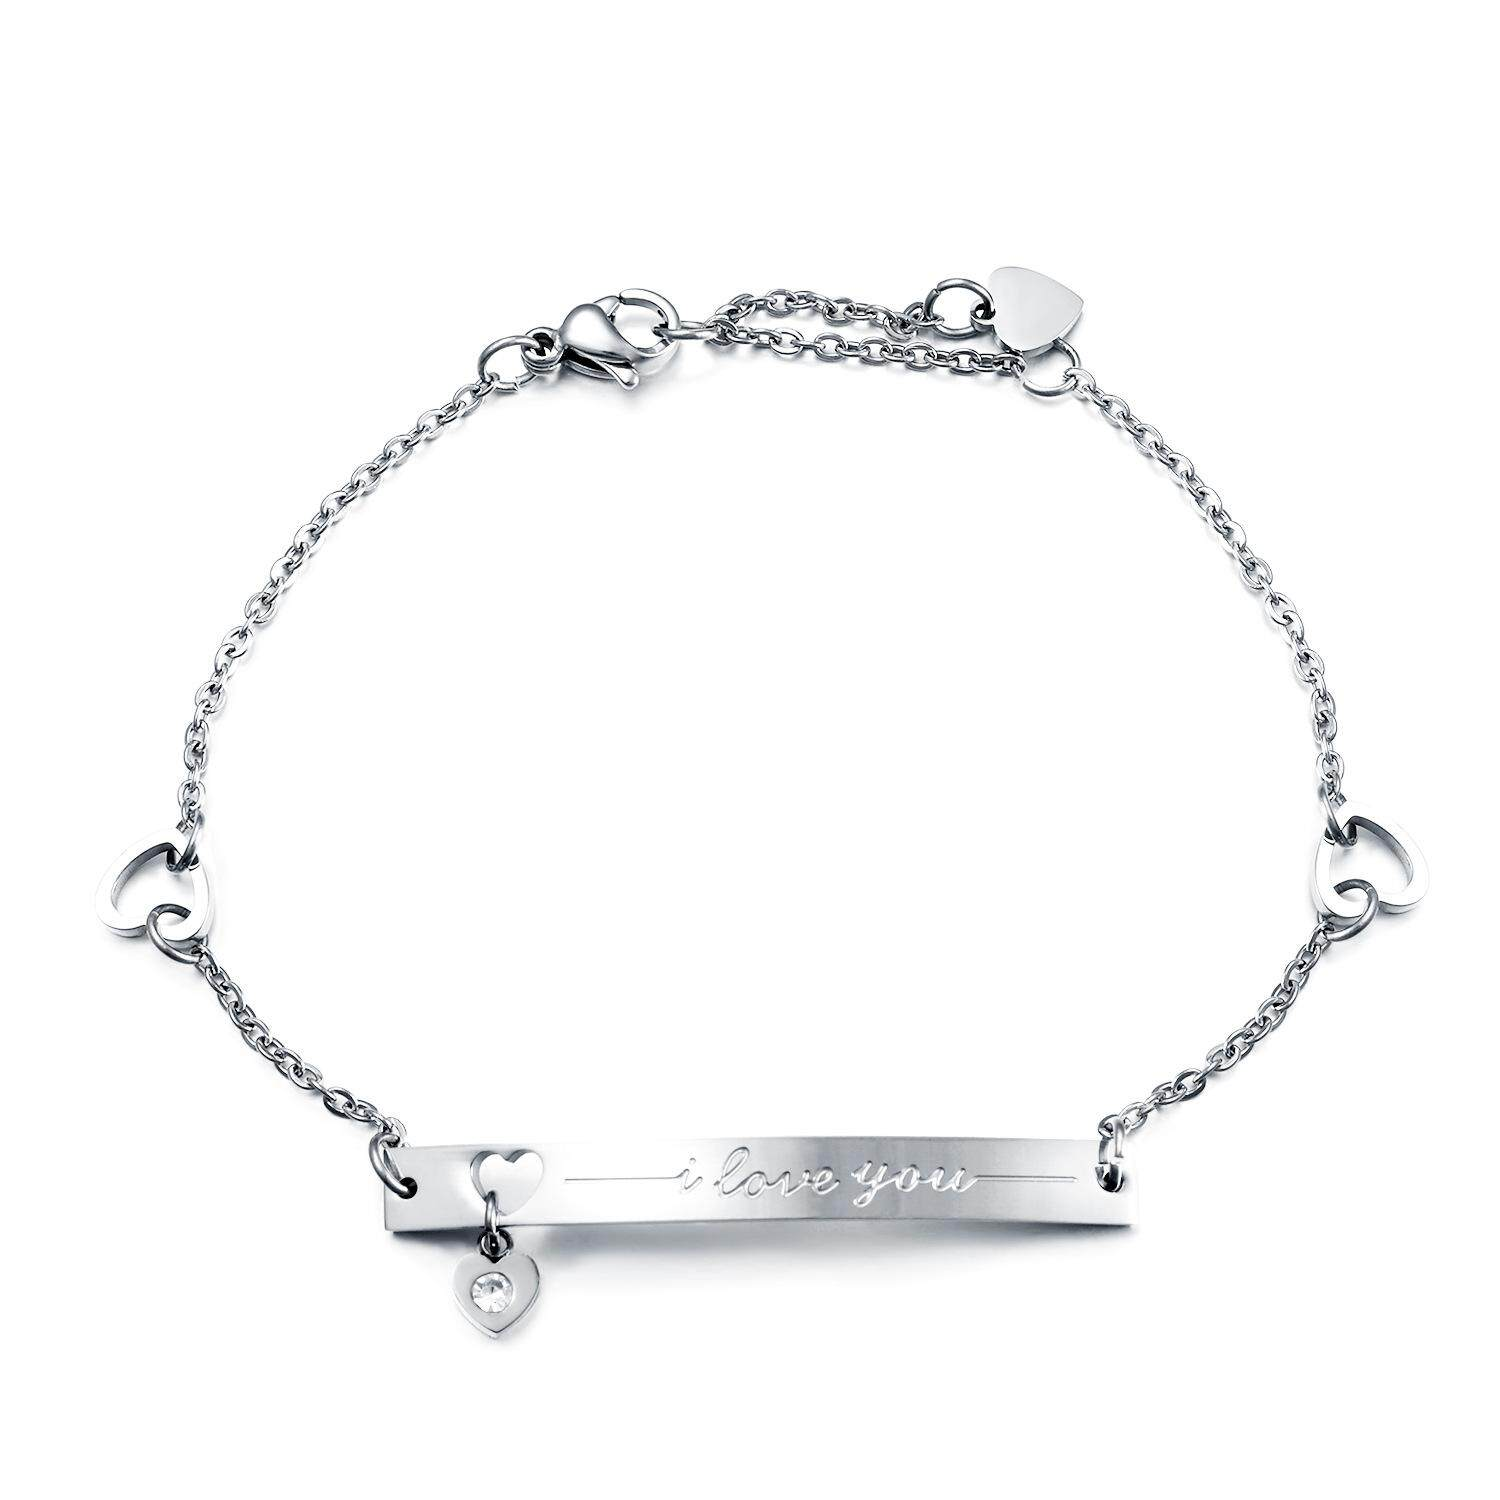 Olen Stainless Steel Engraved i love you Adjustable Bracelet with Cubic Zirconia Jewelry for Women,